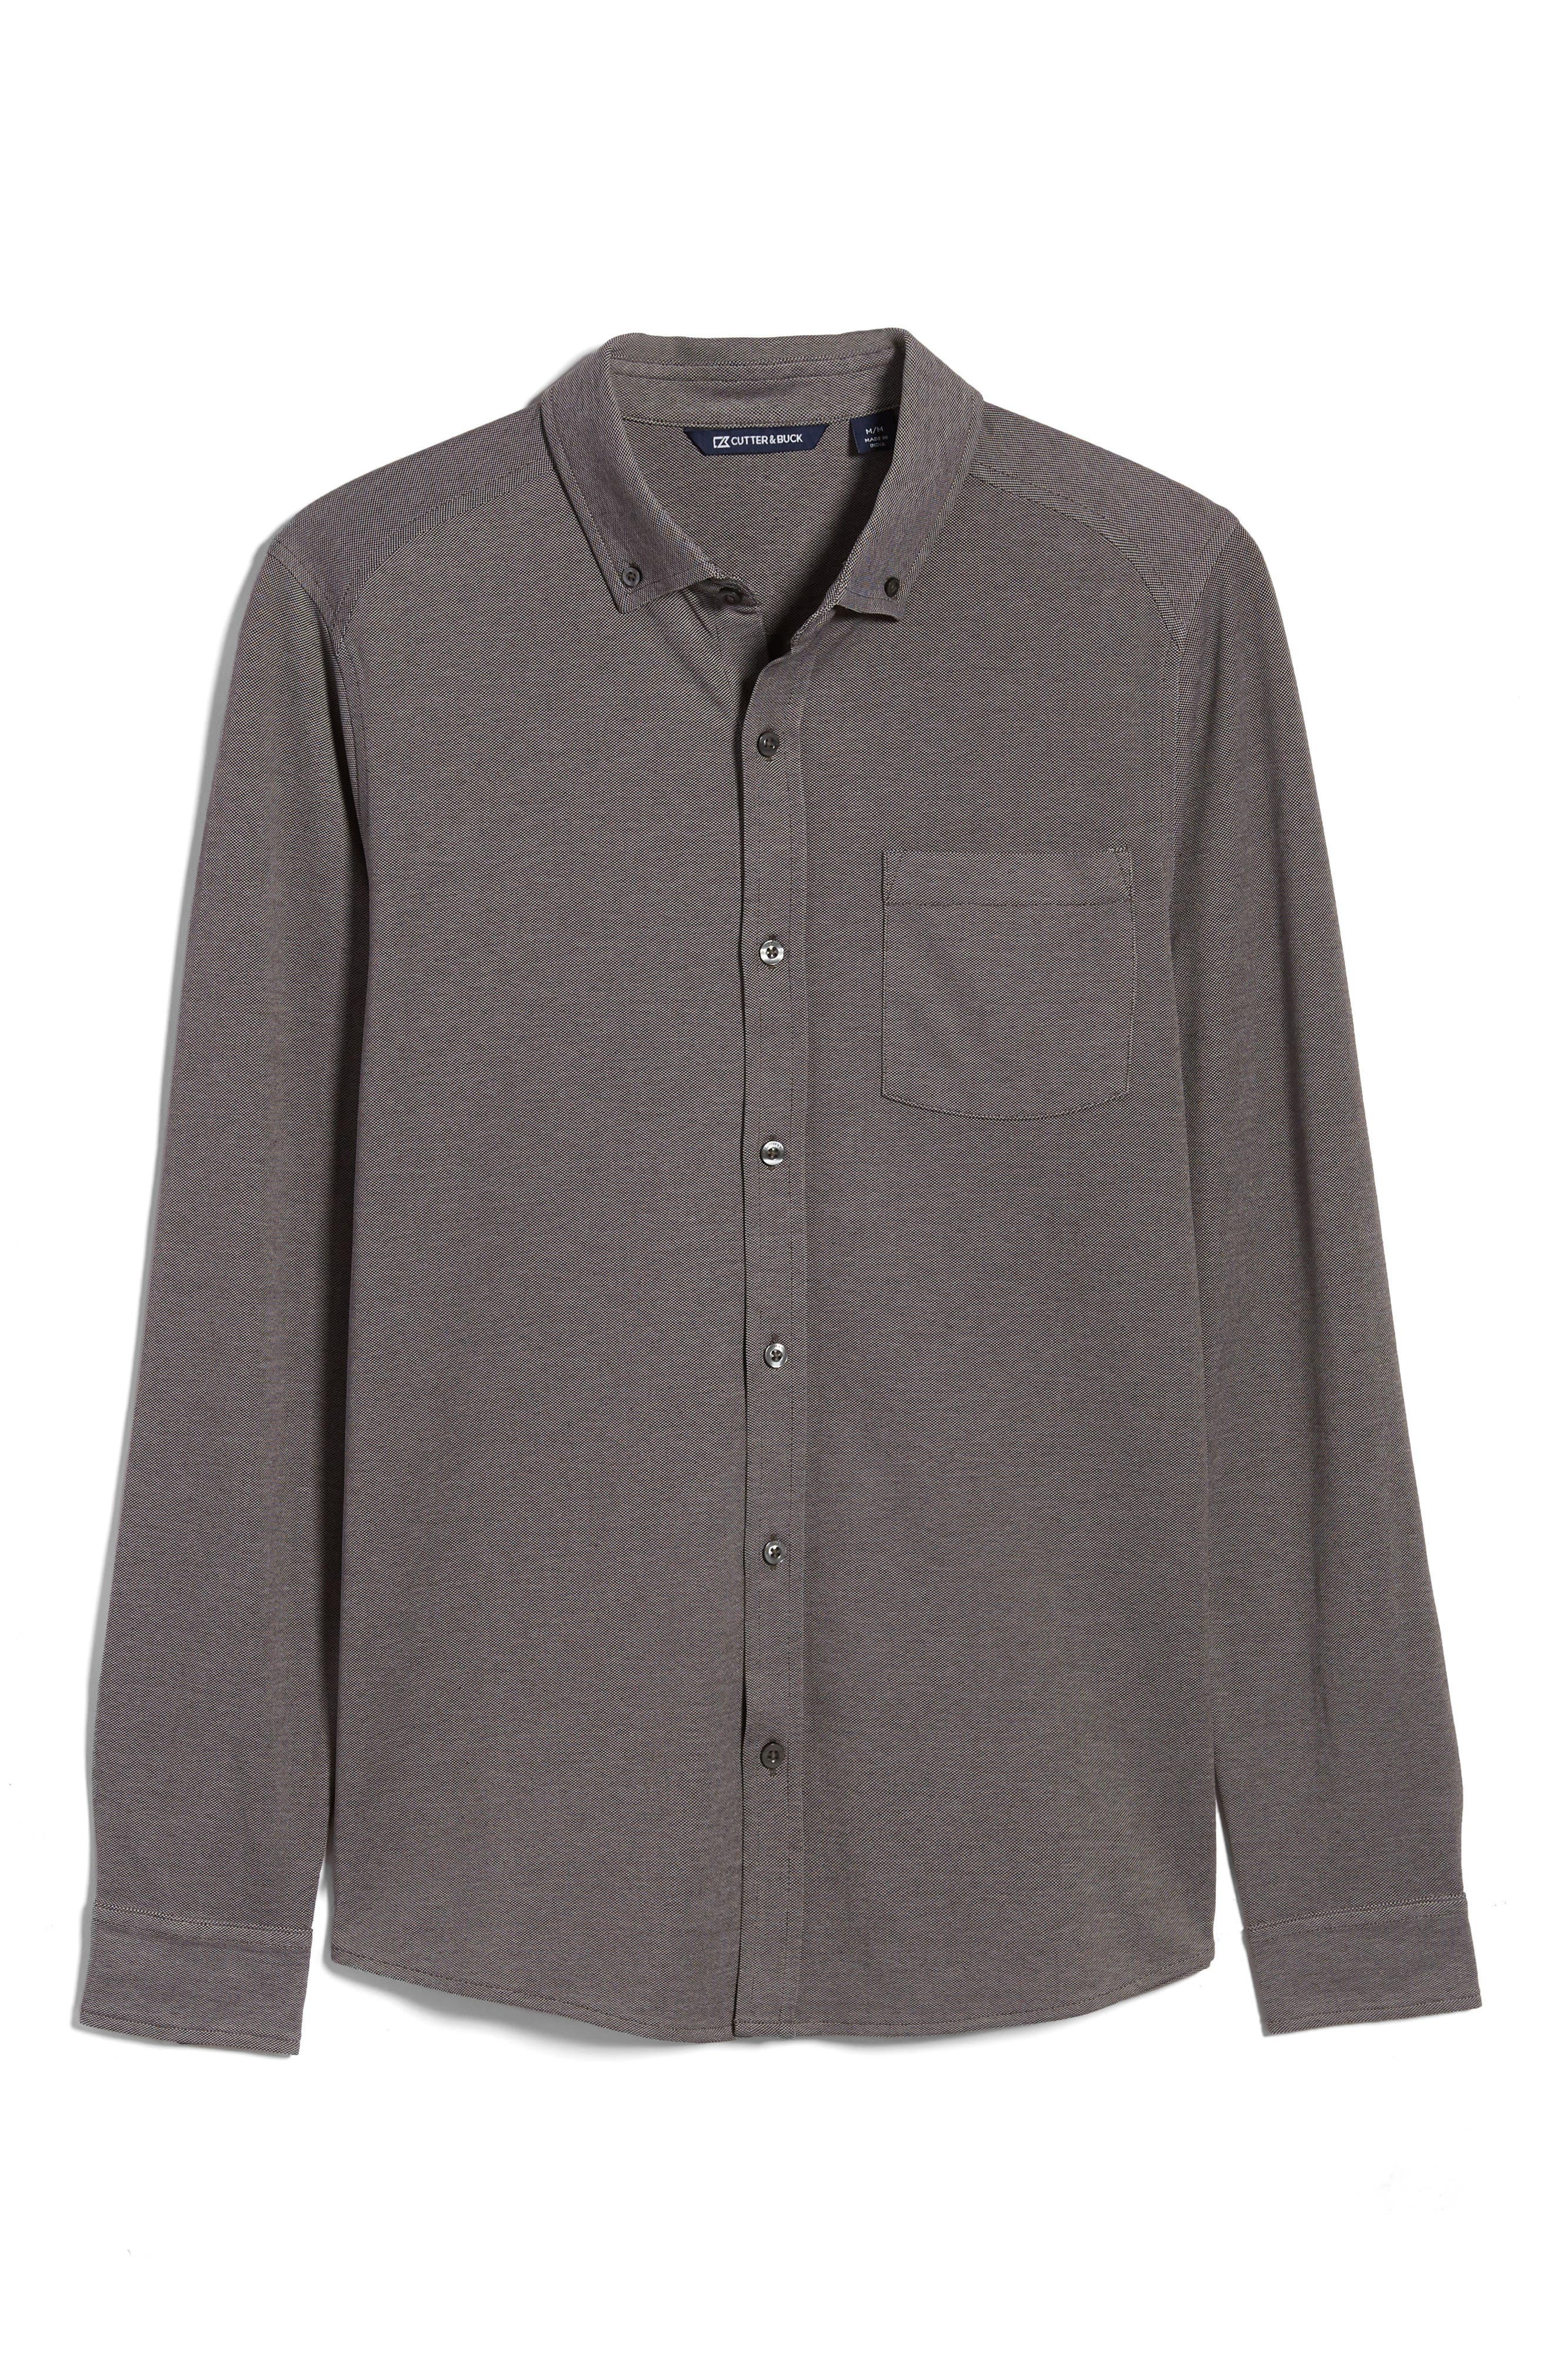 A two-tone pique knit furthers the easy, relaxed look of an oxford shirt styled with a smart button-down collar and an added touch of stretch for comfort. Style Name: Cutter & Buck Reach Button-Down Pique Knit Shirt. Style Number: 6054916. Available in stores.